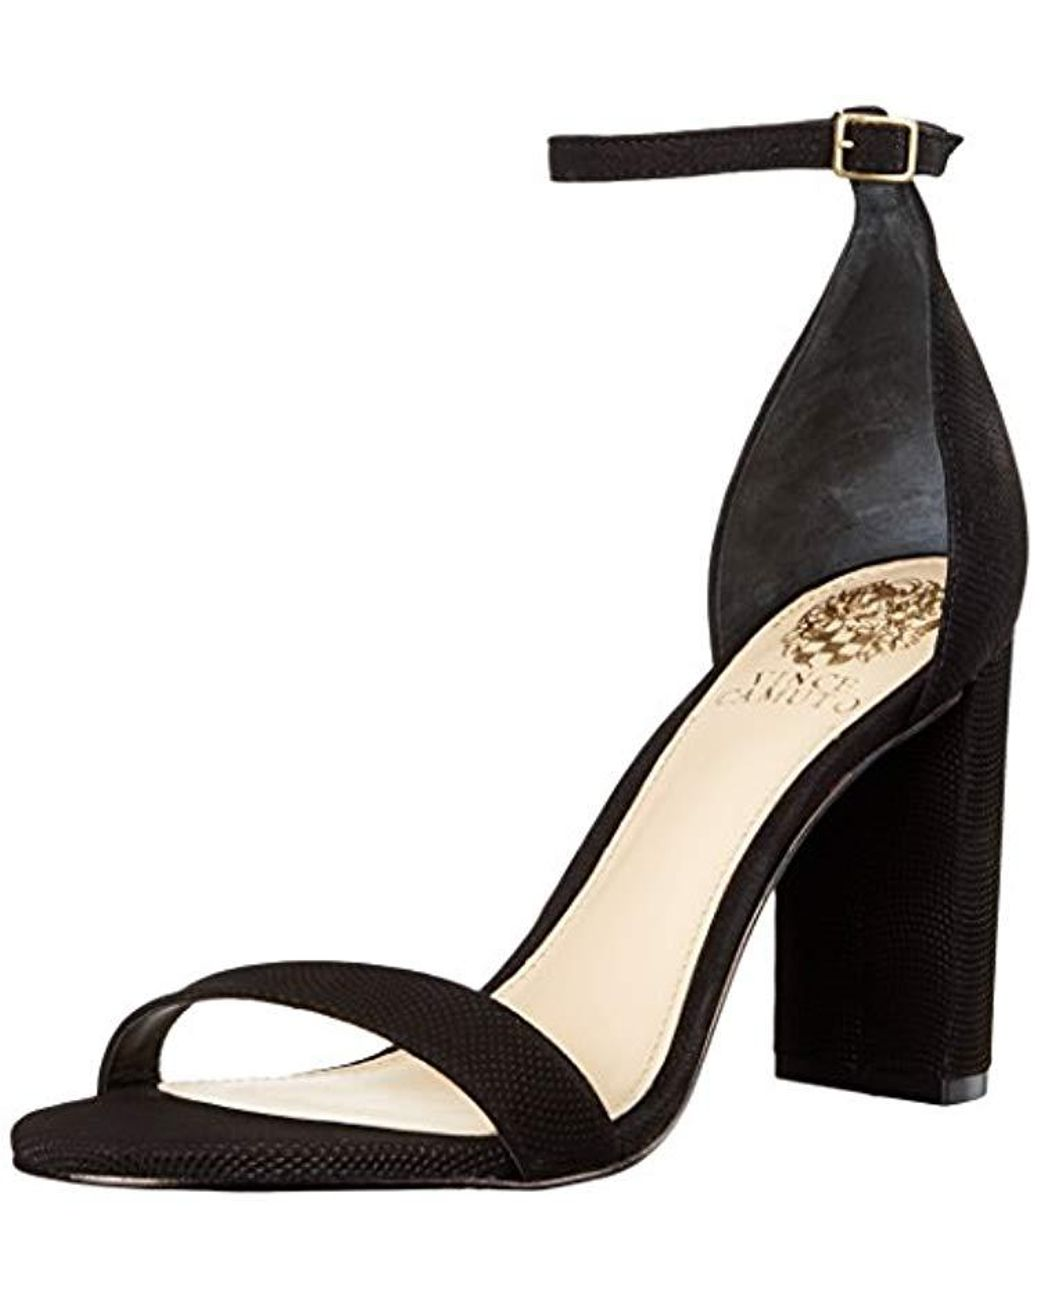 5f7aa374a69 Lyst - Vince Camuto Mairana Dress Sandal in Black - Save 34%